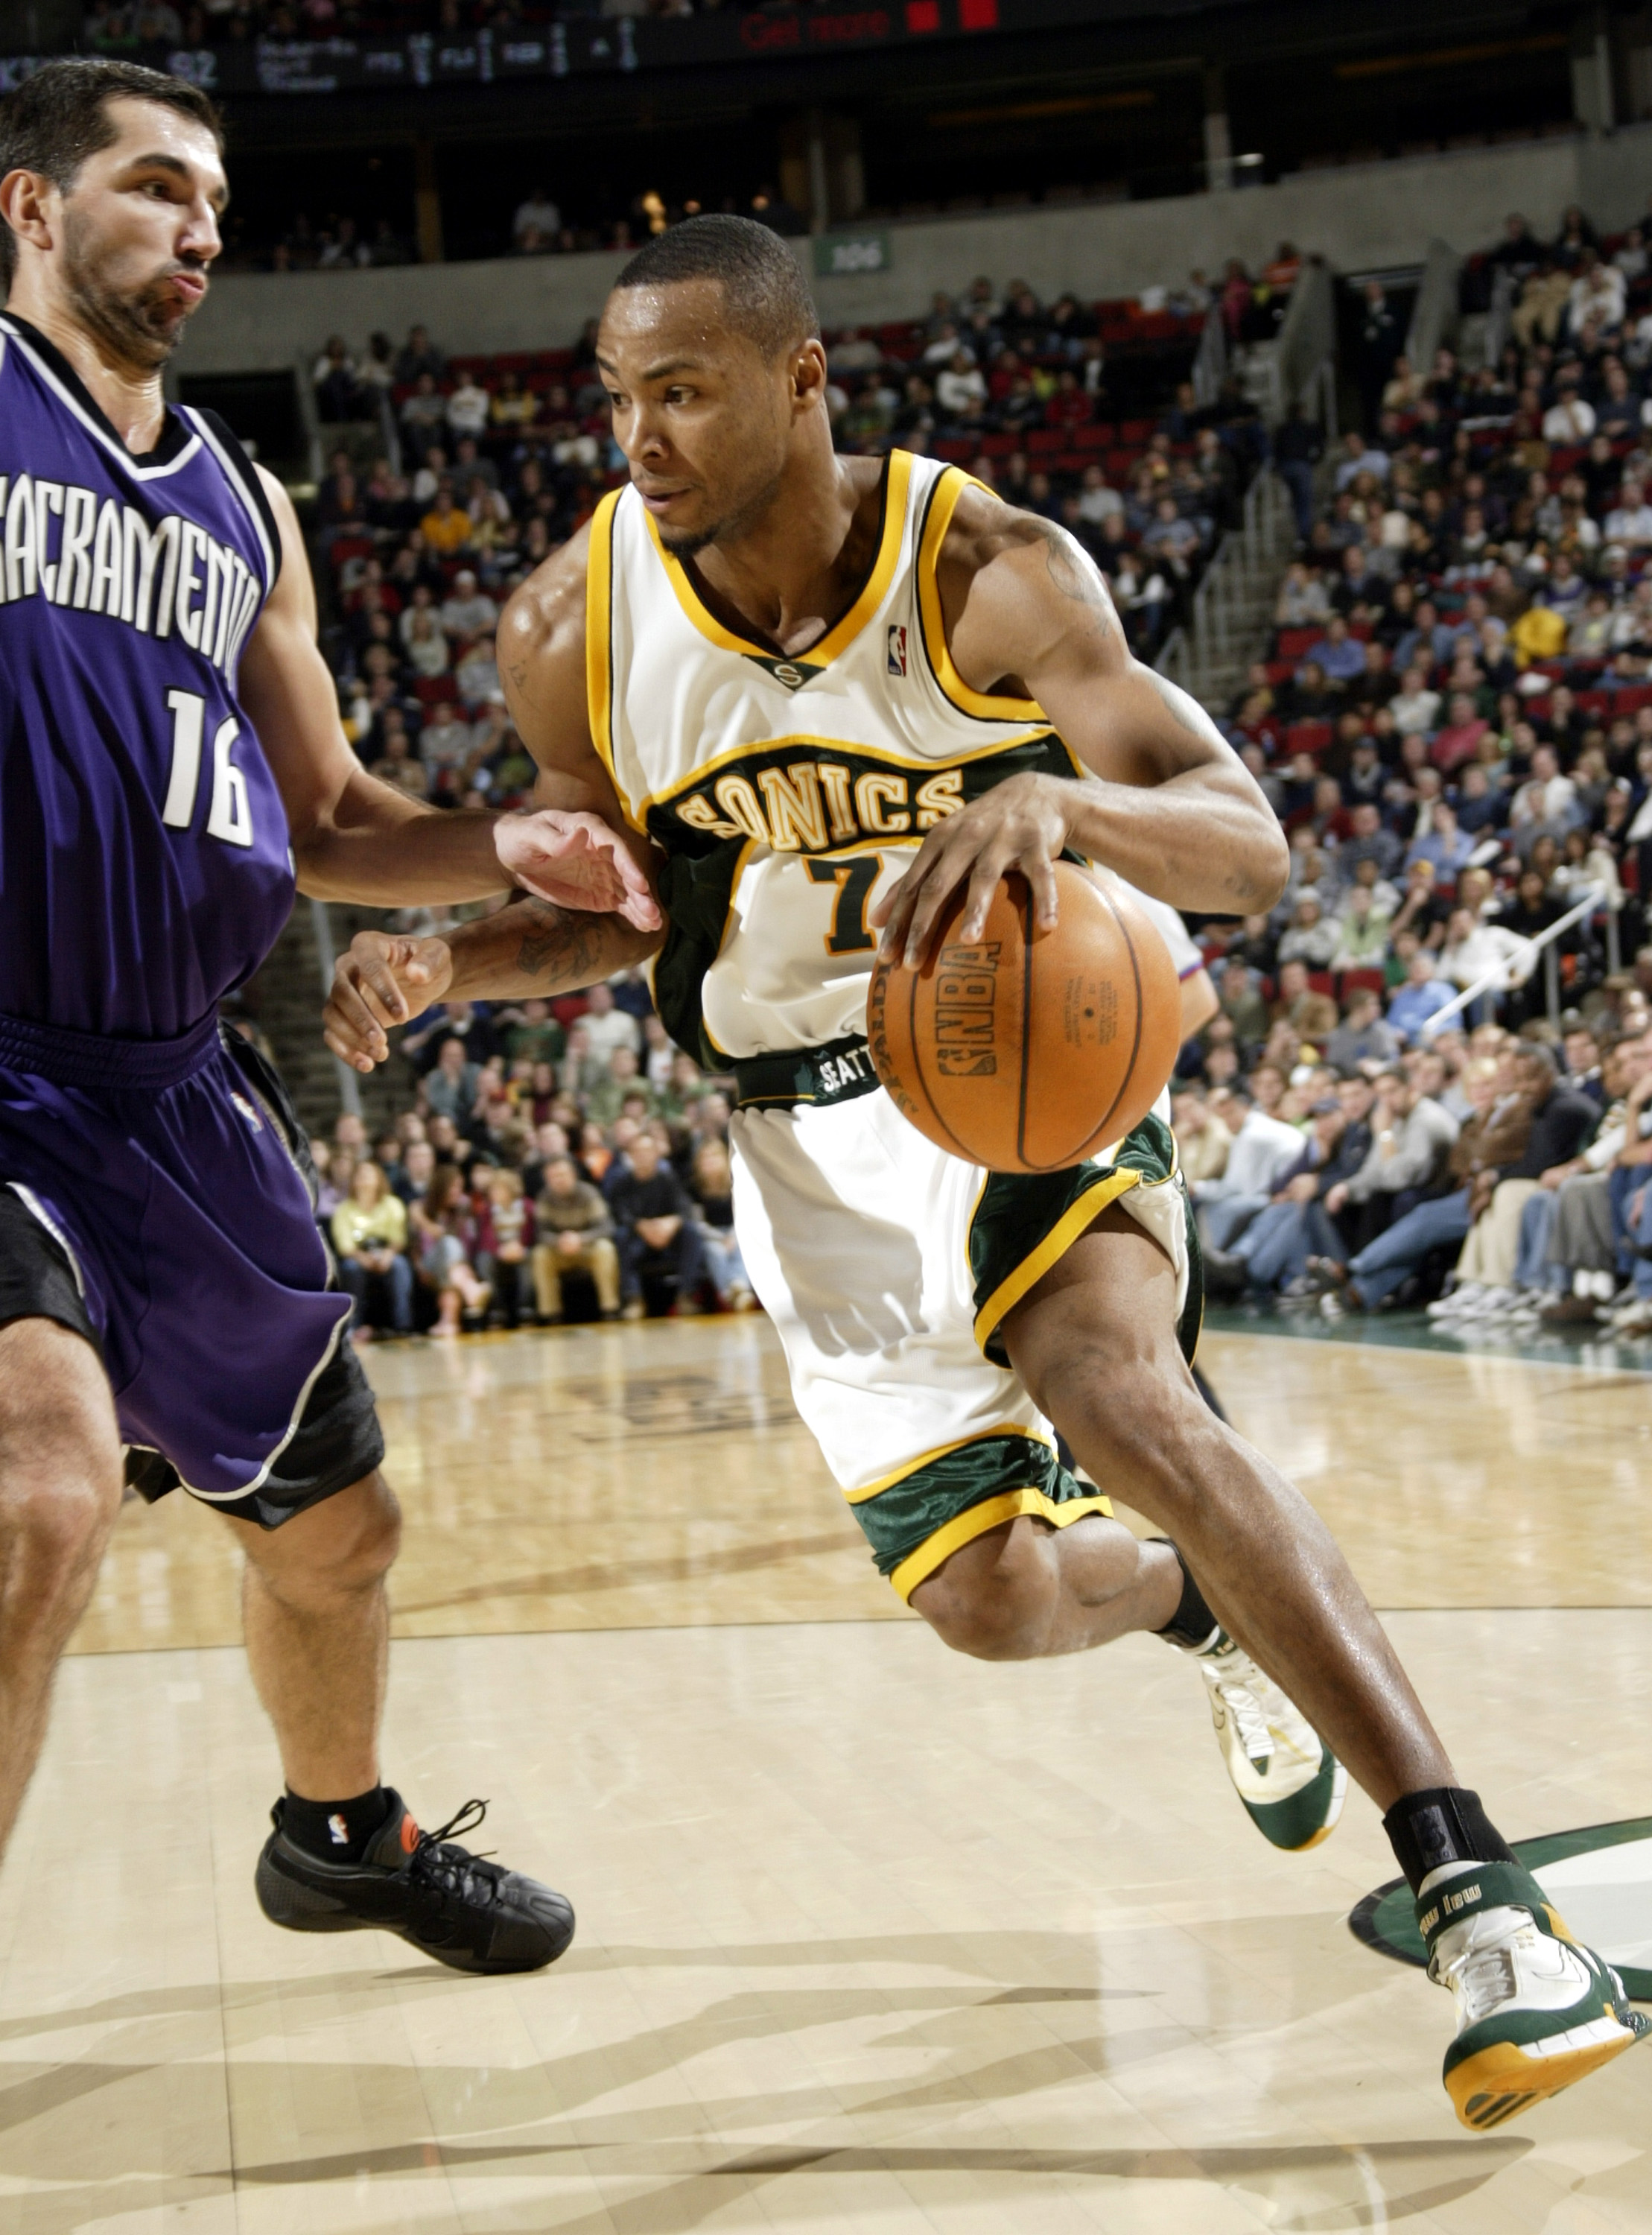 SEATTLE - NOVEMBER 20:  Rashard Lewis #7 of the Seattle SuperSonics drives against Peja Stojakovic #54 of the Sacramento Kings on November 20, 2005 at Key Arena in Seattle, Washington.  NOTE TO USER: User expressly acknowledges and agrees that, by downloa